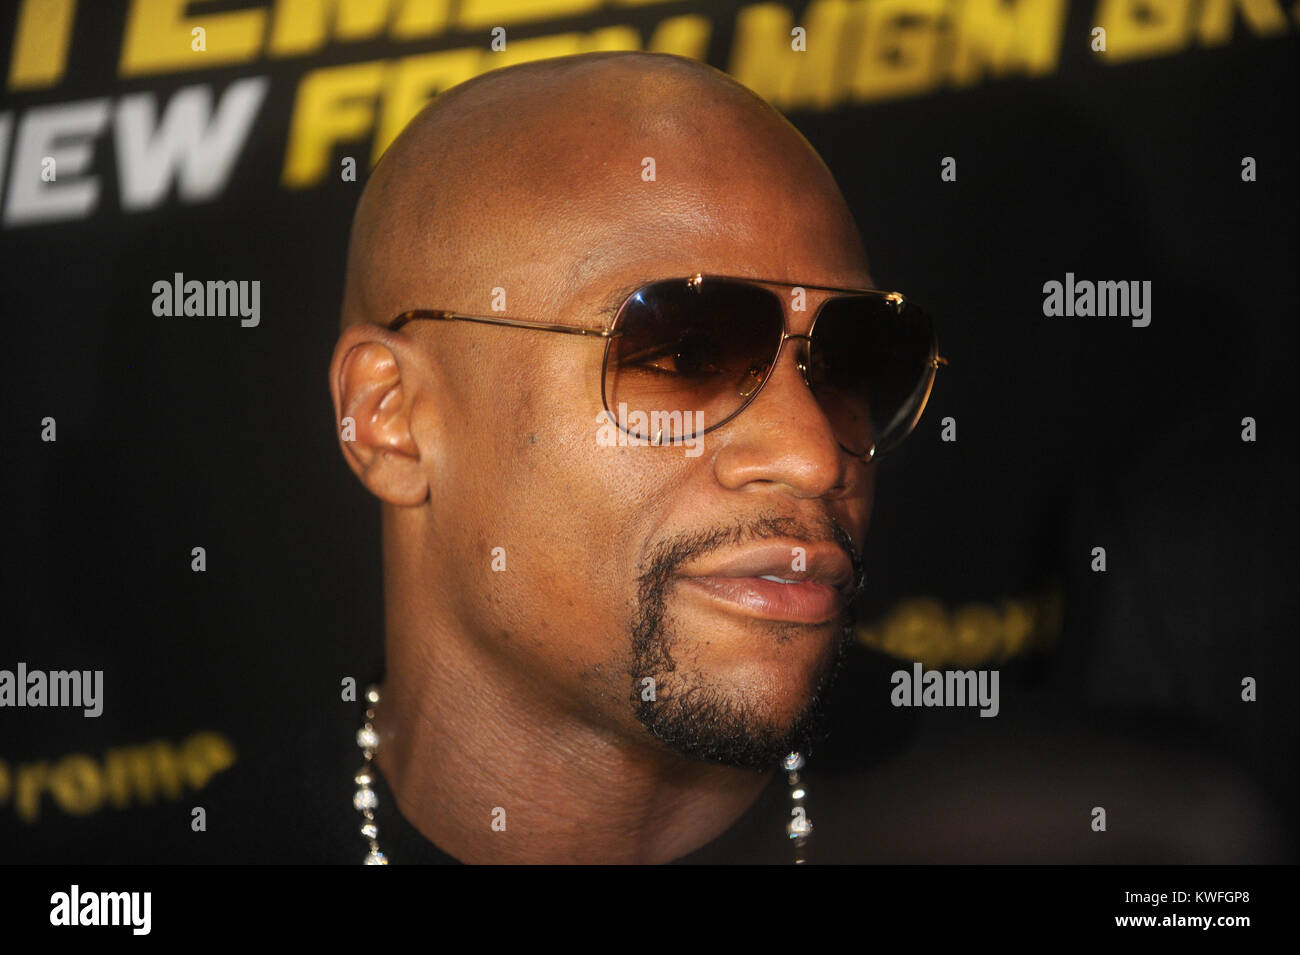 Floyd Mayweather Jr V Marcos Maidana Press Tour Stock Photos & Floyd ...